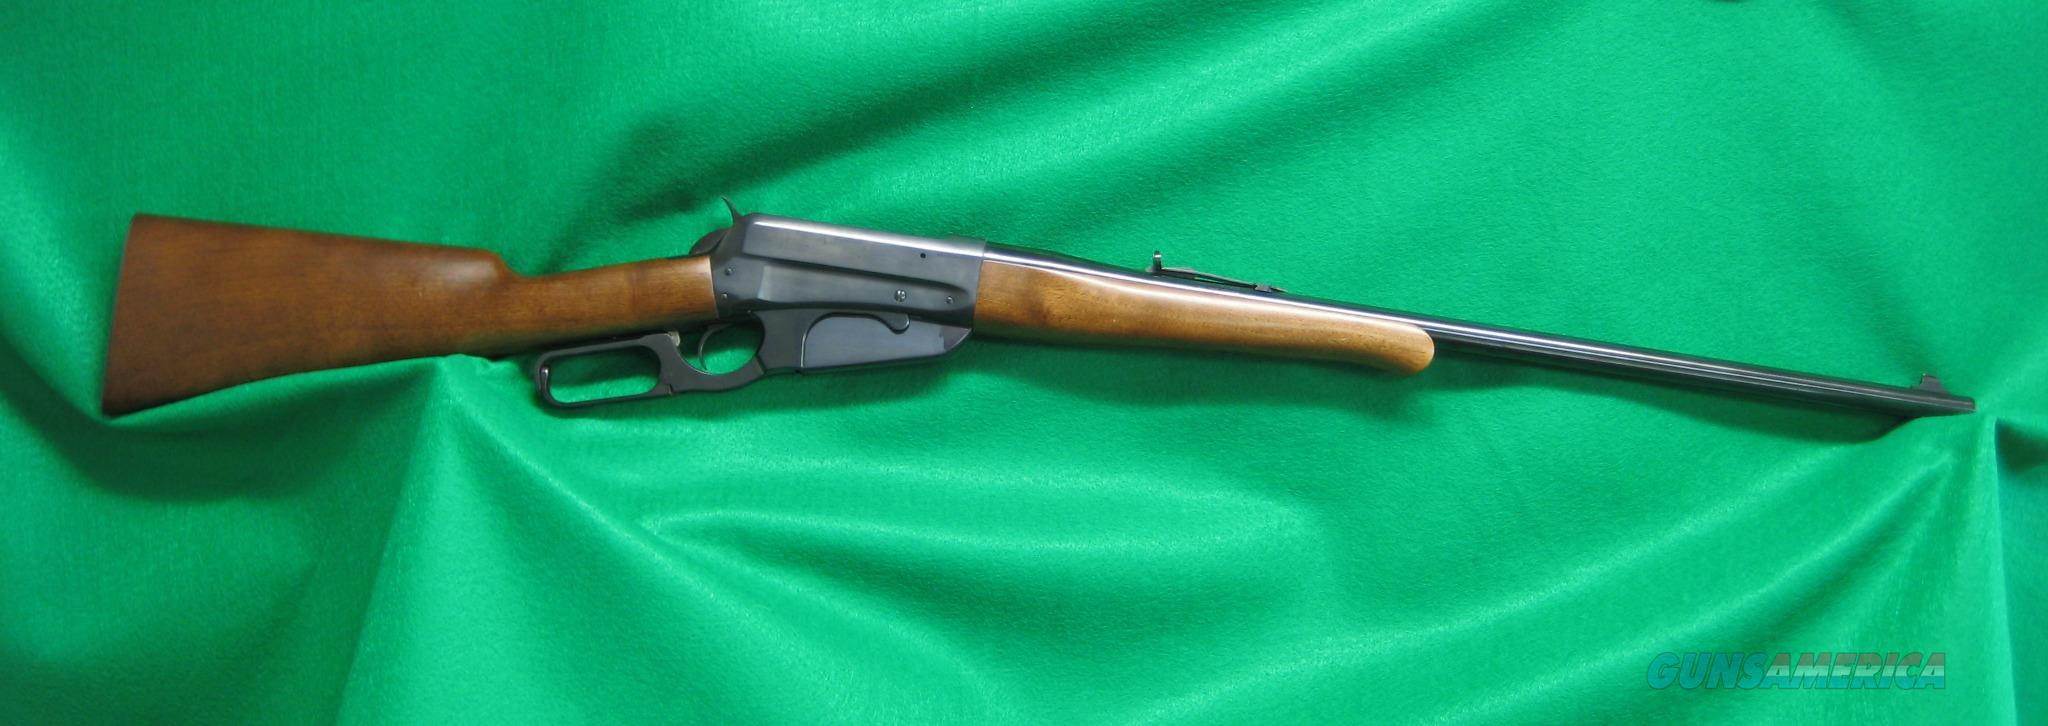 Browning 1895 30-40 Krag Unfired  Guns > Rifles > Browning Rifles > Lever Action